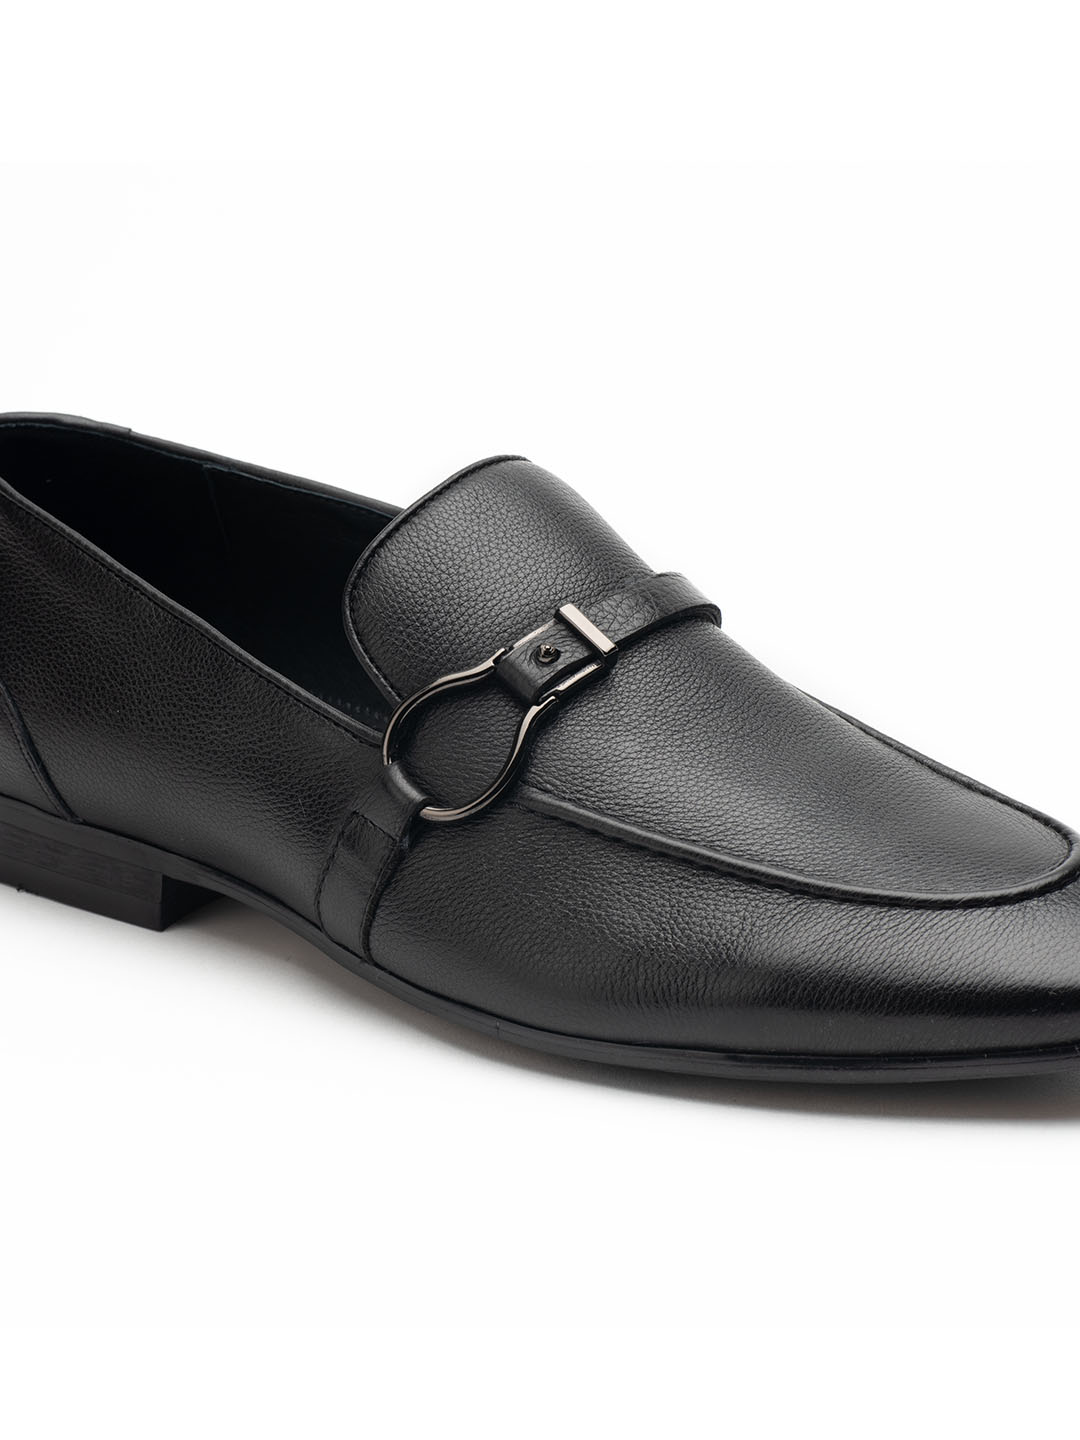 Heel _ Buckle London-HBDARM084-Carousal Black Loafers-Black-5